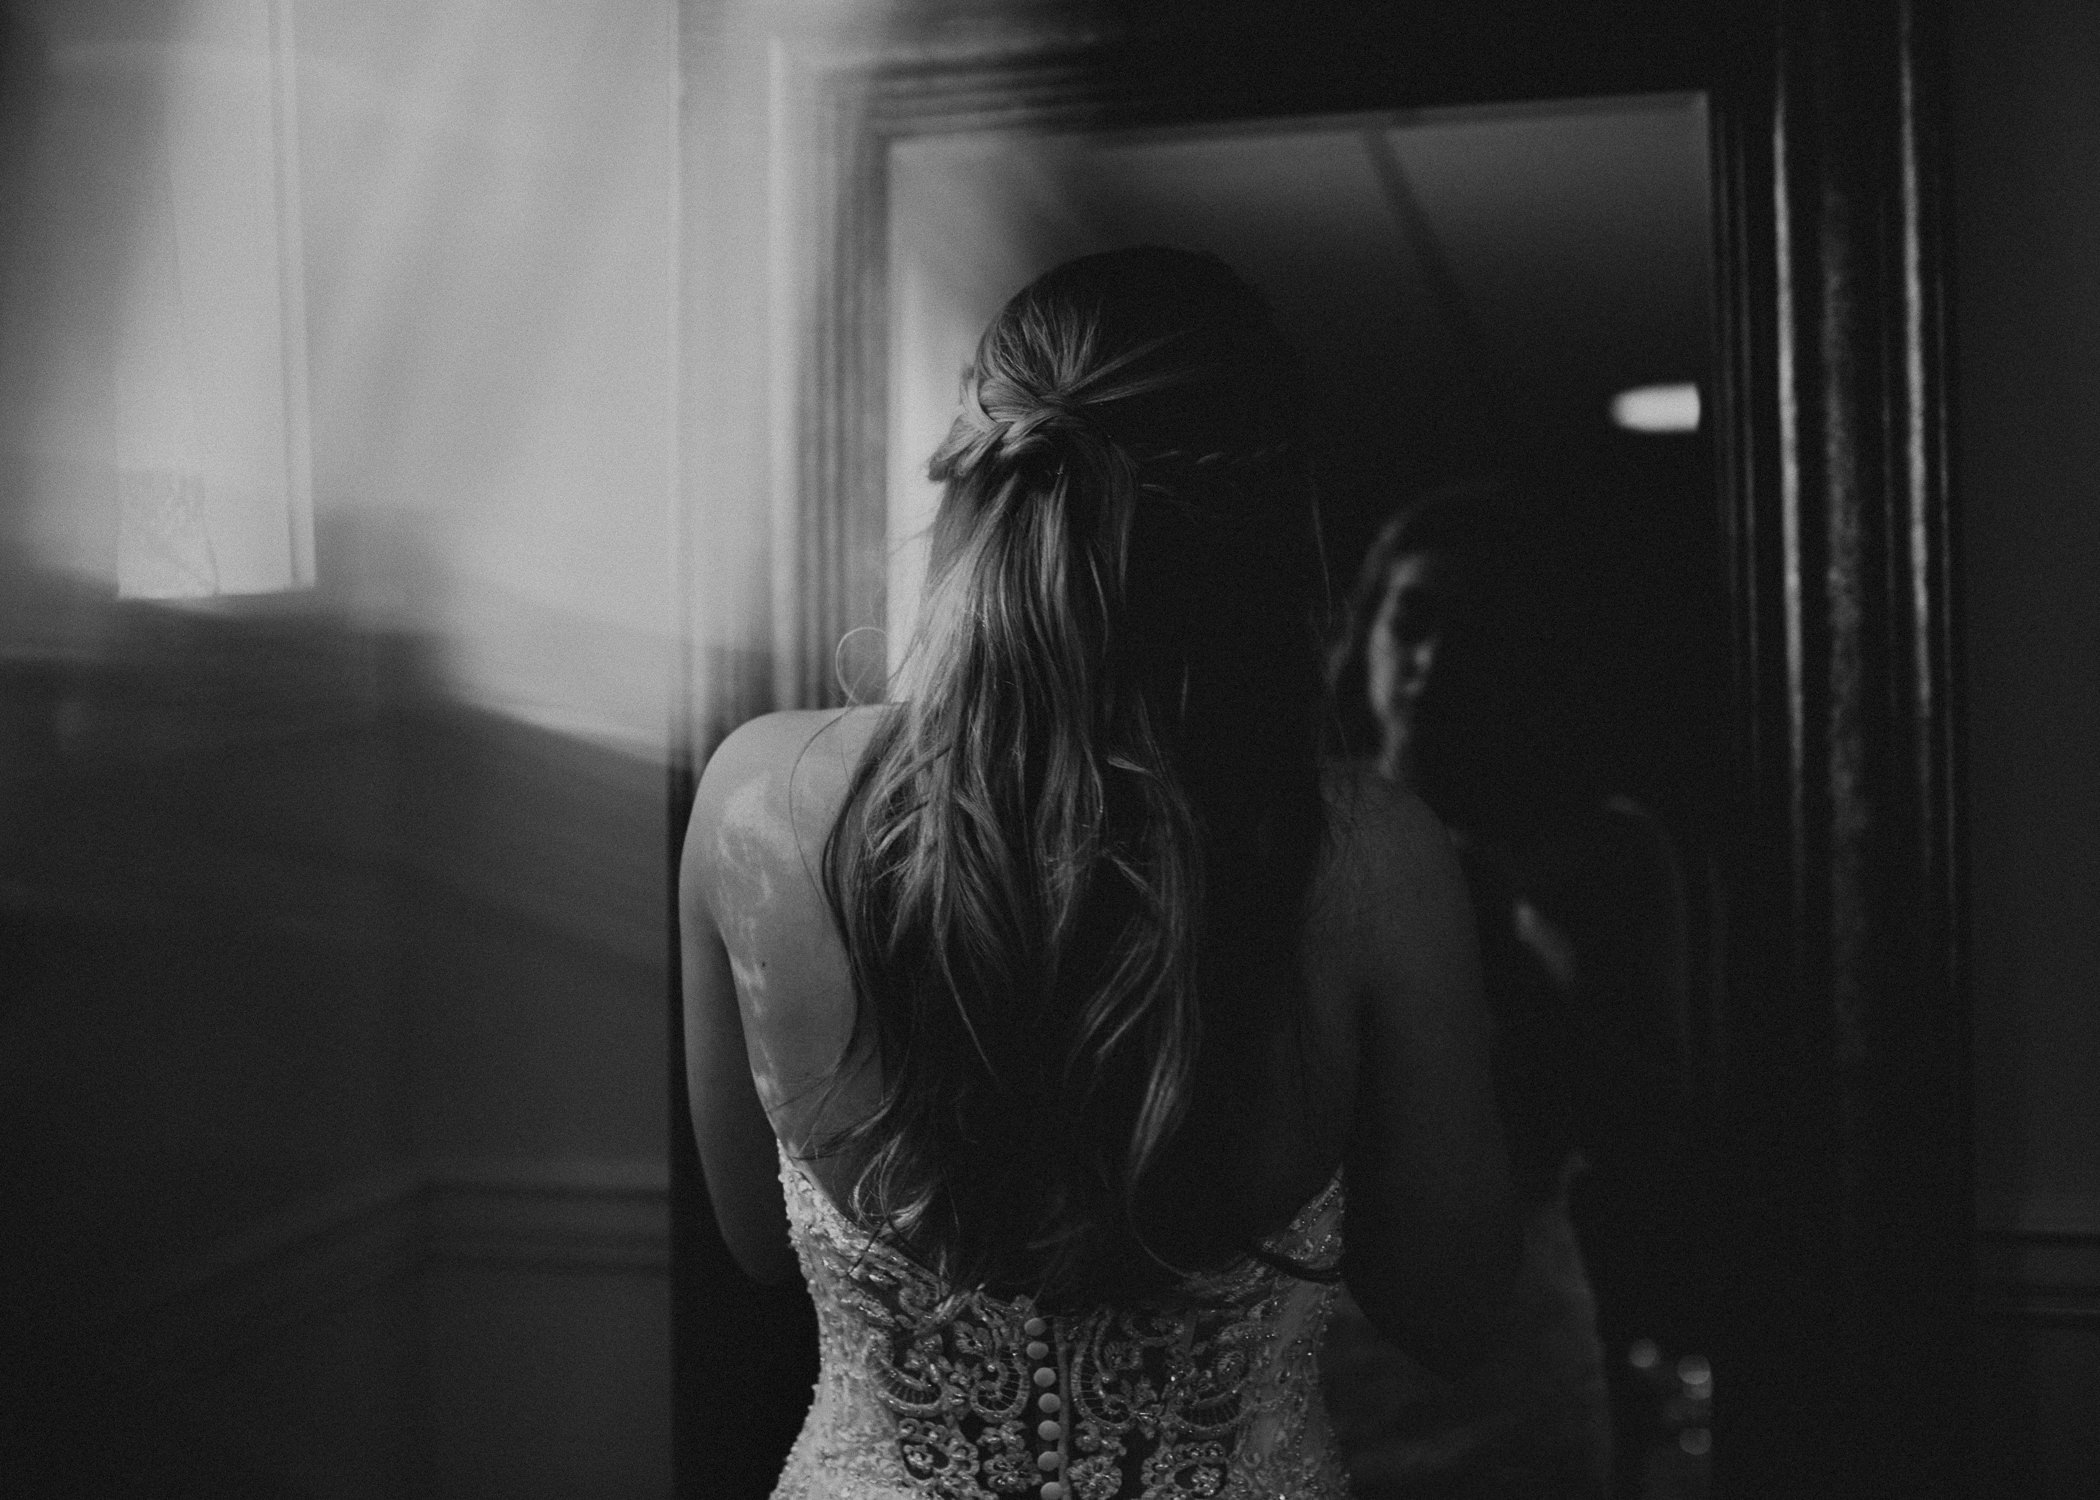 27 - Wedding Day Atlanta Photographer : Getting Ready, Ceremony, Reception, Bride and Groom, Wedding Party. .jpg